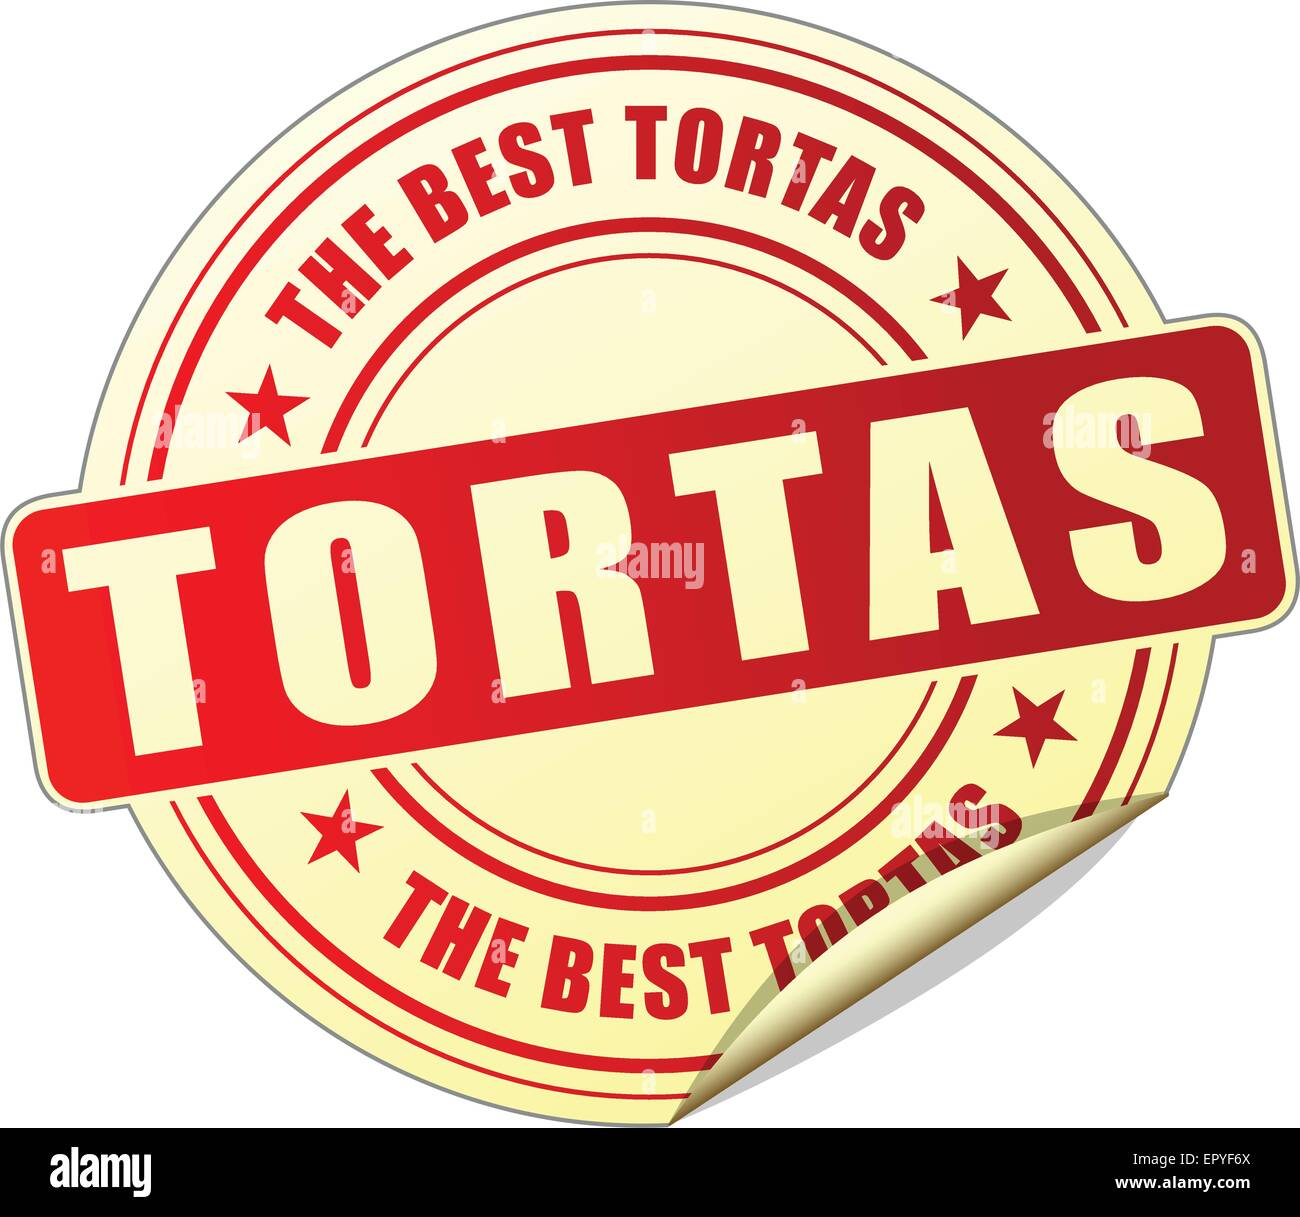 illustration of tortas red sticker on white background - Stock Vector